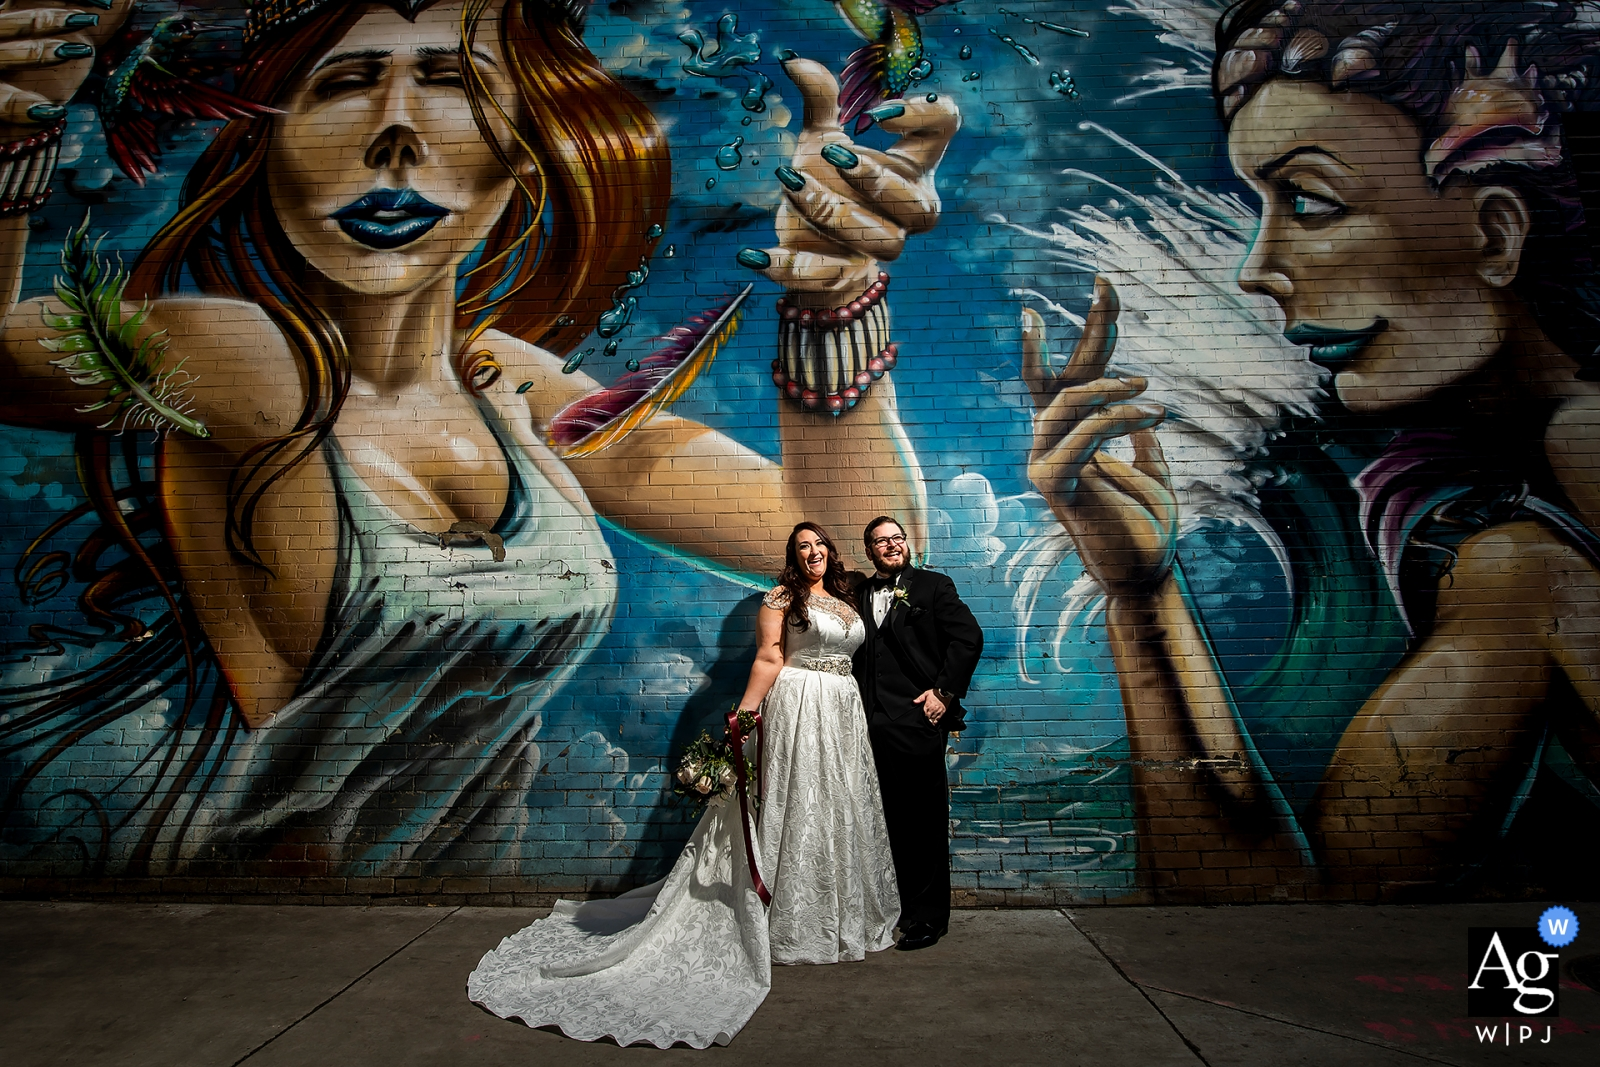 The Grand Hyatt Denver wedding photographer | Bride and groom portrait outside with graffiti mural